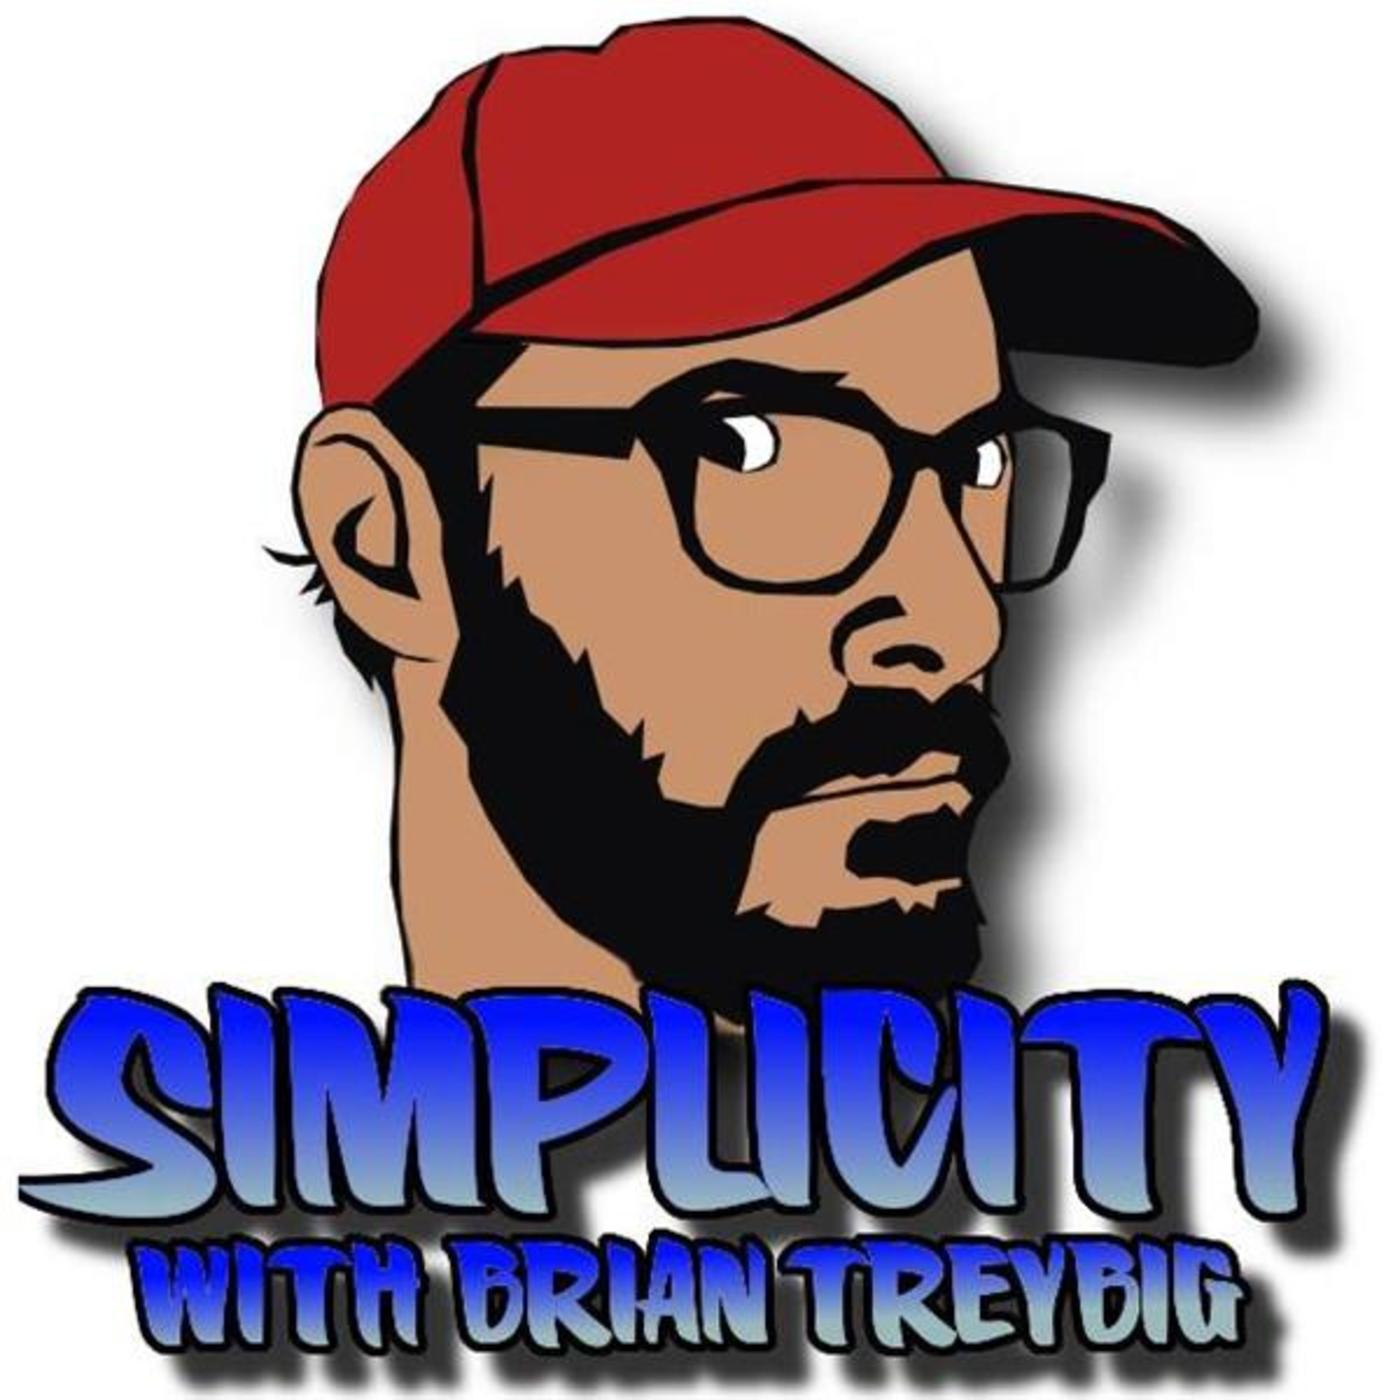 Simplicity with Brian Treybig